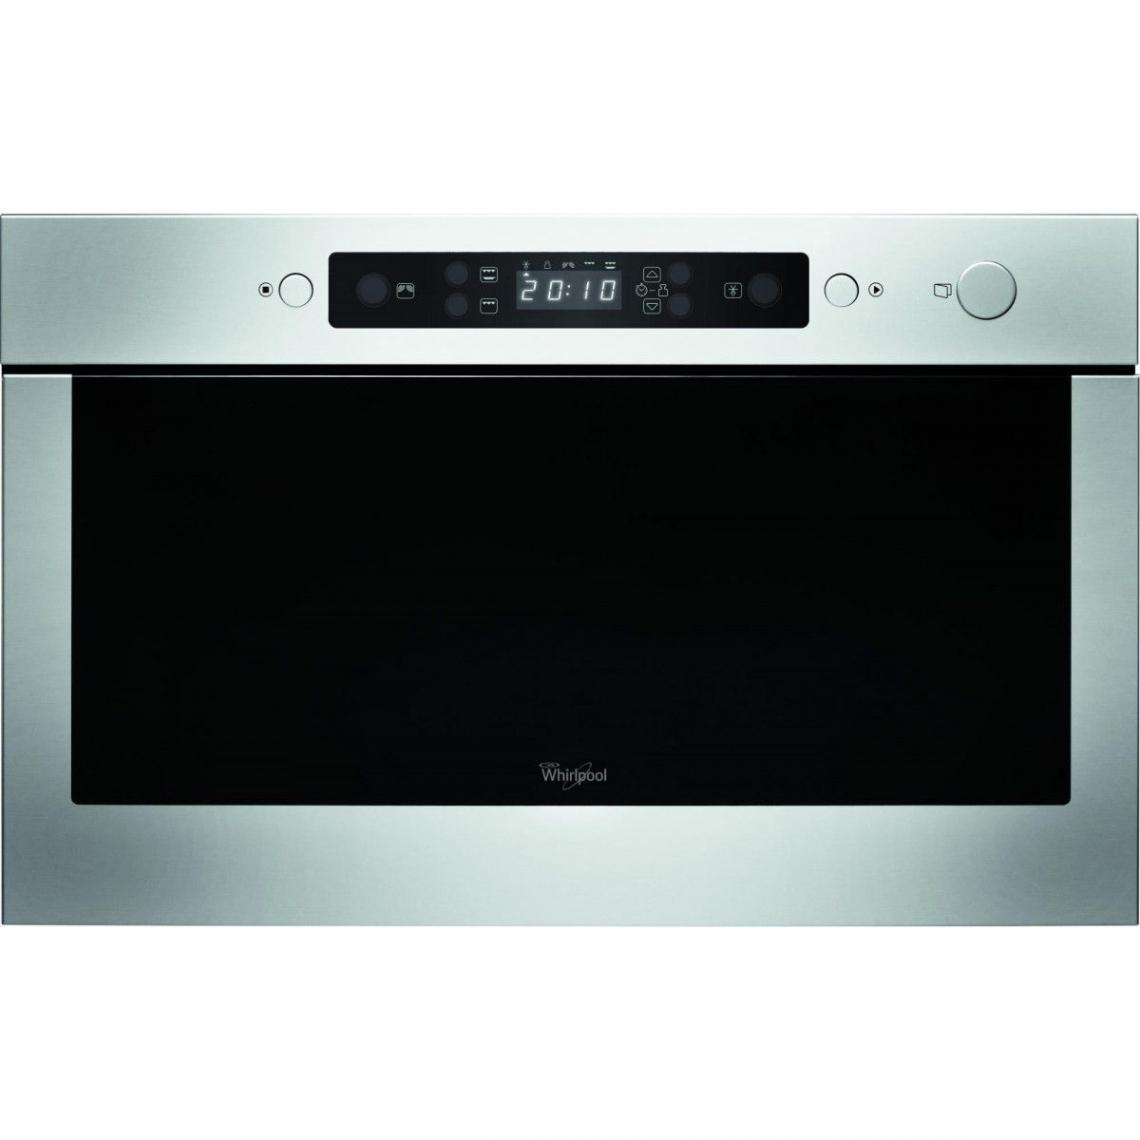 whirlpool Micro-ondes Encastrable 22l Whirlpool 750w 59.5cm, 1018699